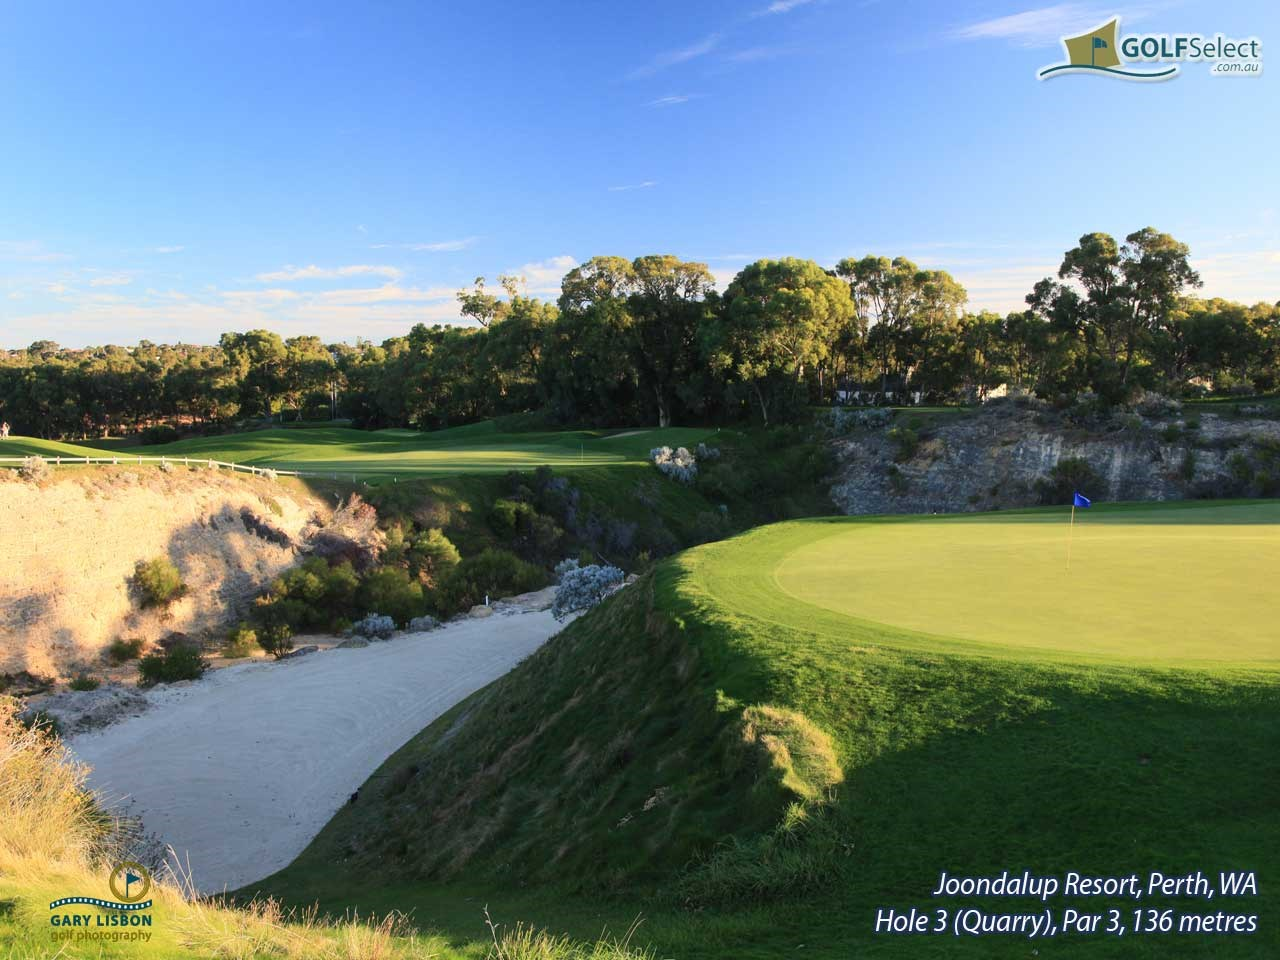 Joondalup Resort Hole 3 (Quarry), Par 3,136 metres